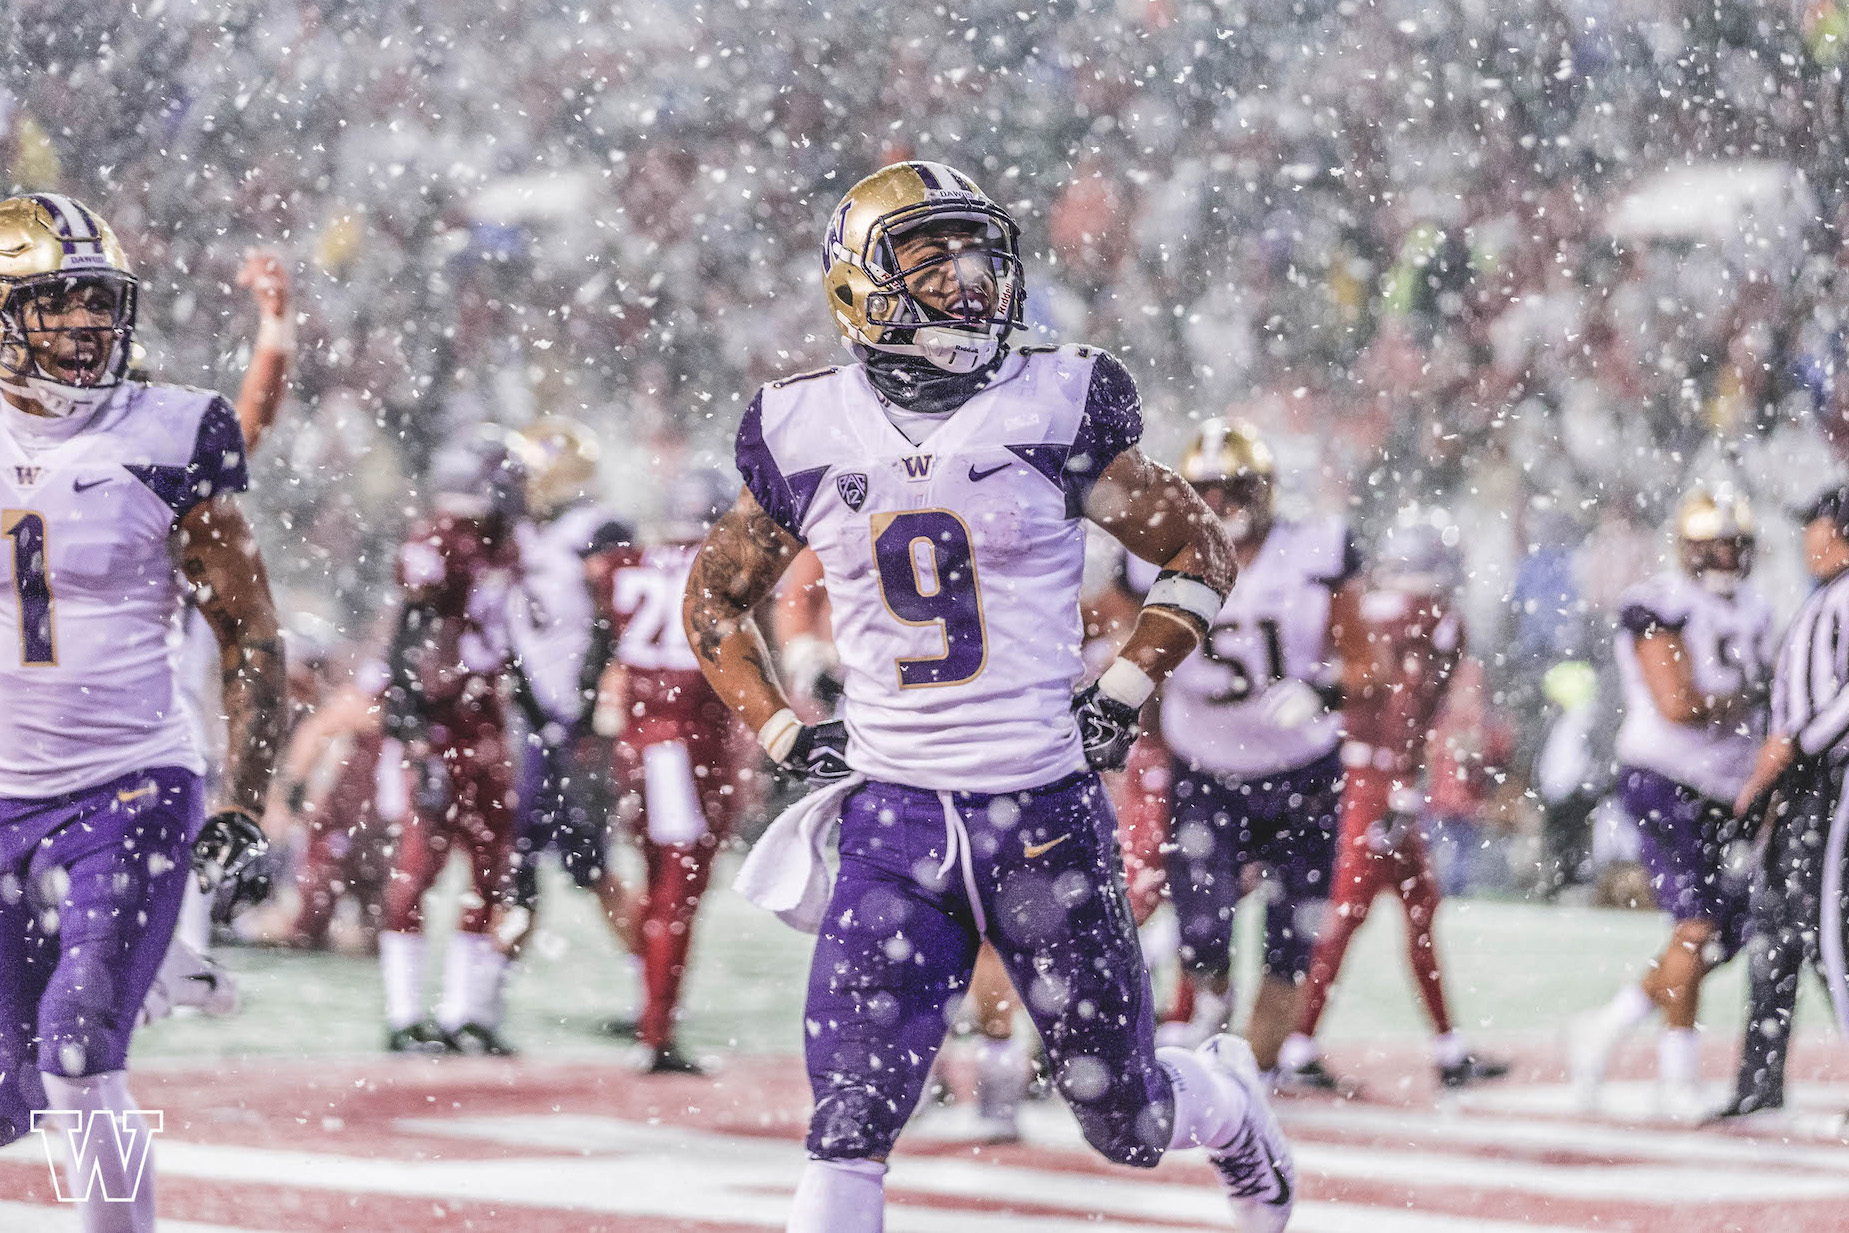 Myles Gaskin during the 2018 Apple Cup against Washington State University, courtesy of UW Athletics